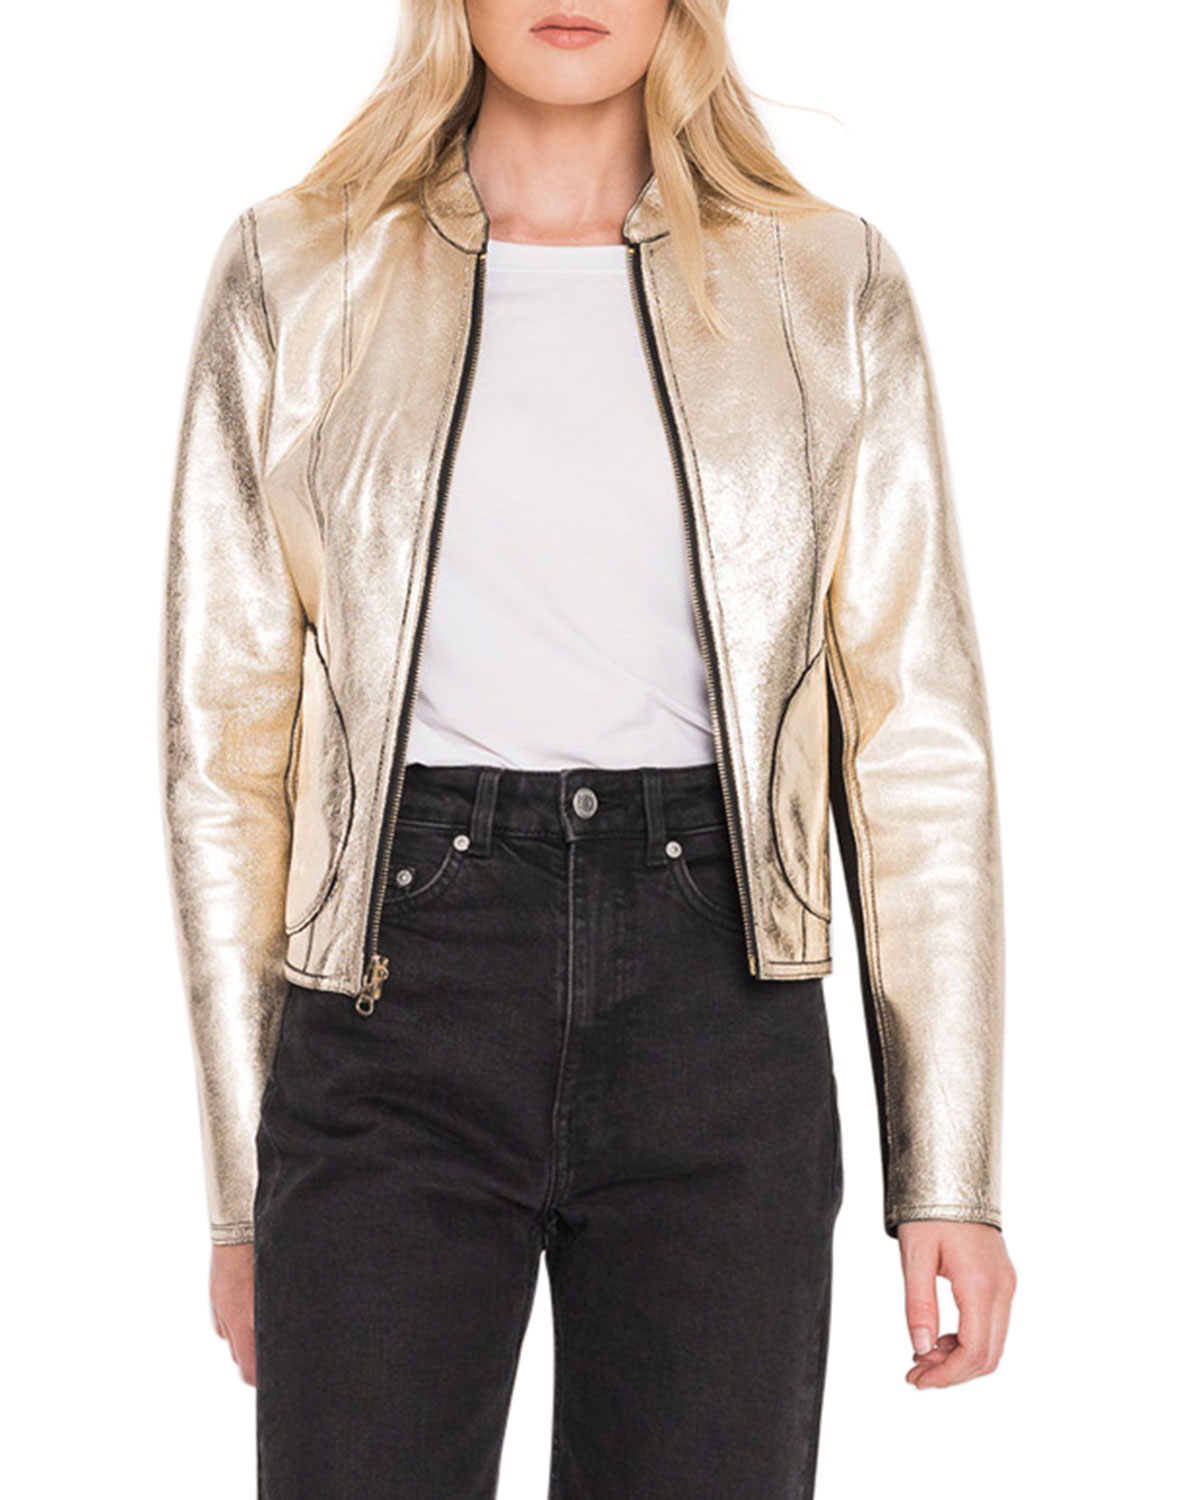 LaMarque Chapin Reversible Black/Gold Leather Bomber Jacket